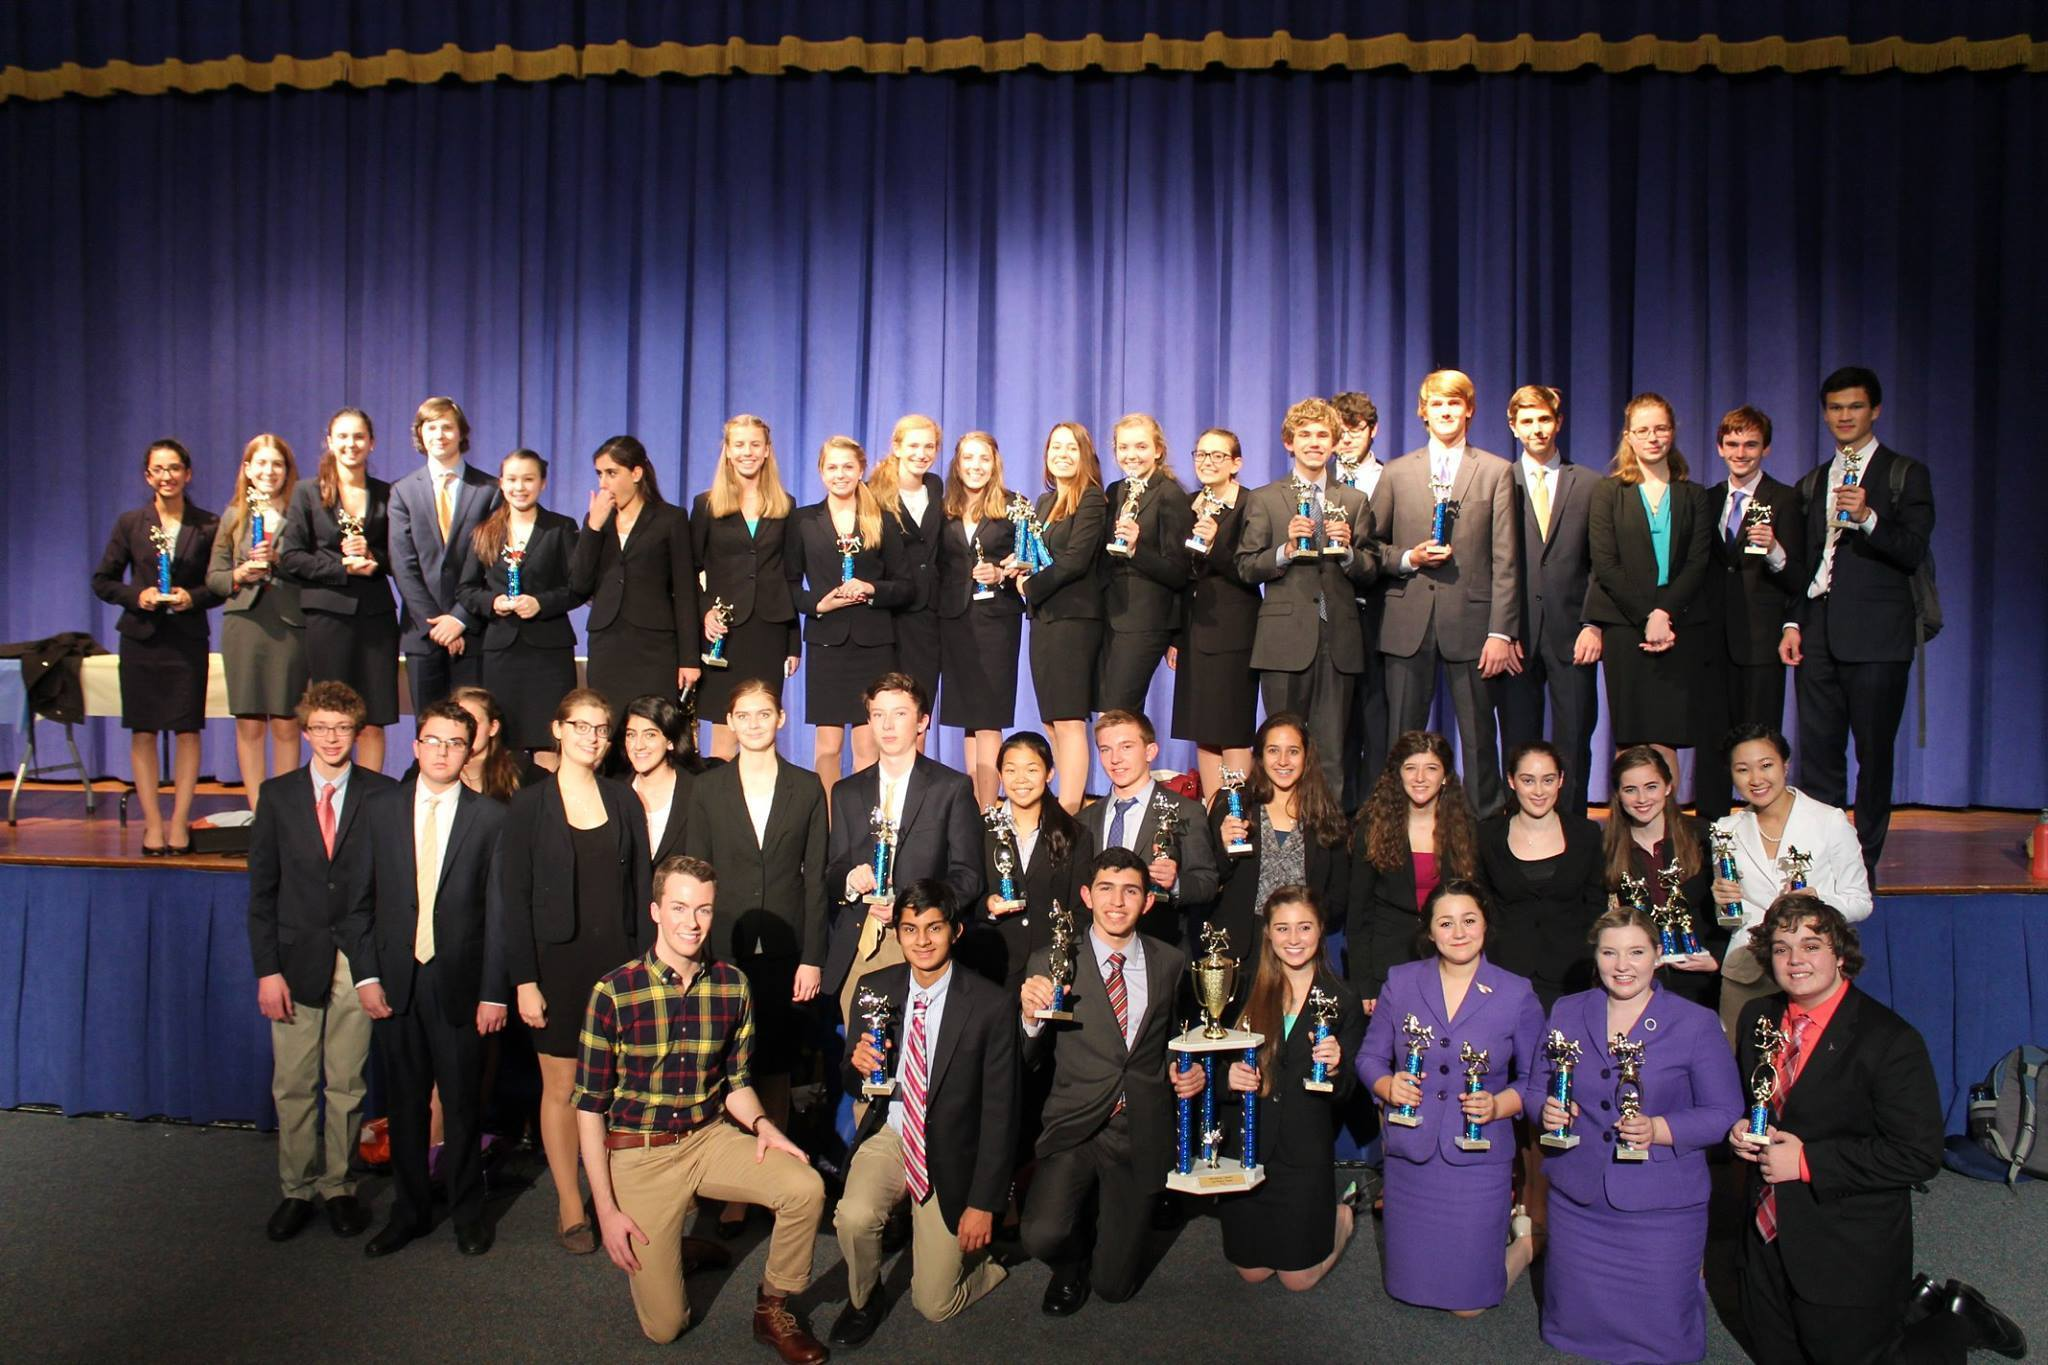 f212807ac01206d86ed7_MANVILLE_AWARDS_PHOTO.jpg